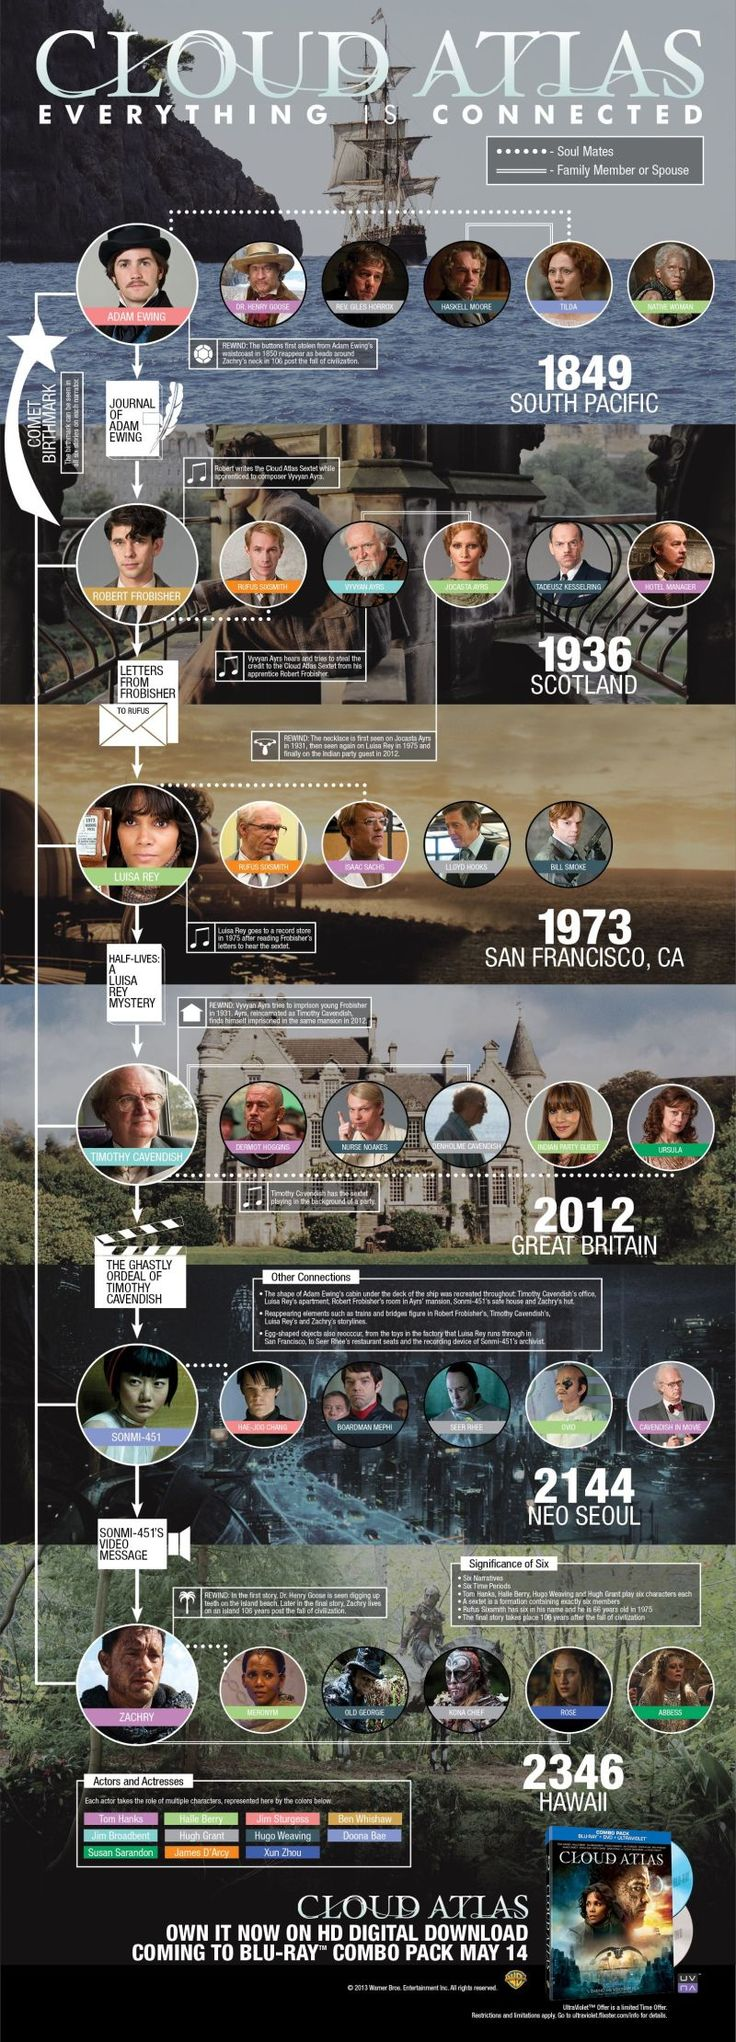 There's an awful lot going on in Cloud Atlas, the time-spanning, super-ambitious movie that's out on DVD and Blu-ray today. Six time periods, tons of characters, the same actors playing different characters, all cutting back and forth. So here's a super handy chart and some featurettes from the DVD, to explain it to you!